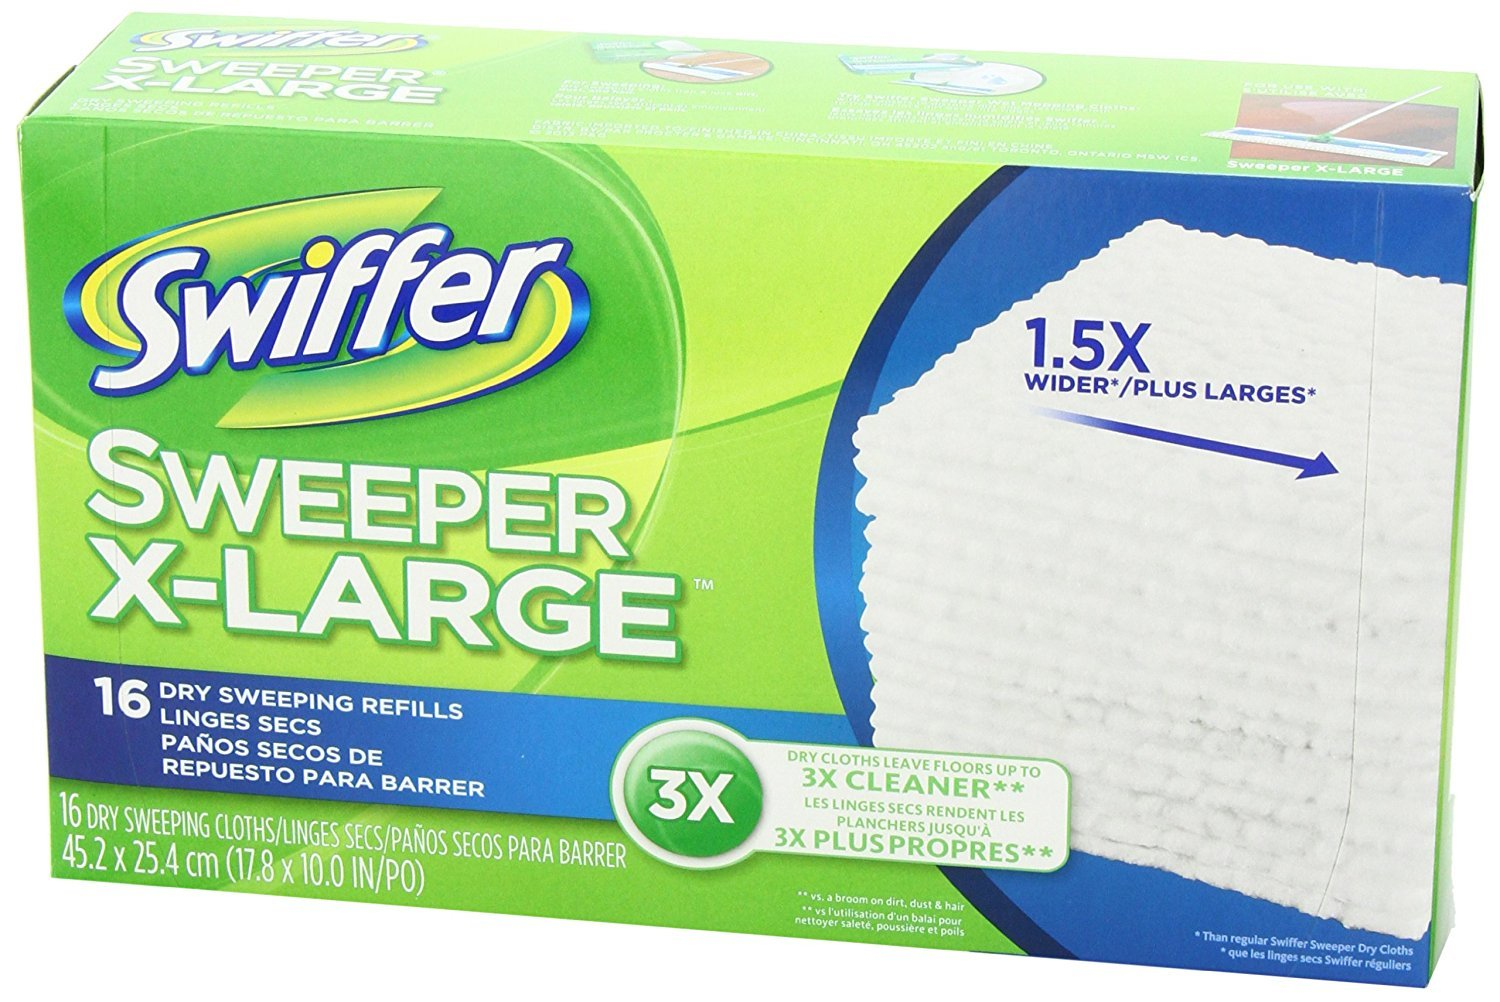 Swiffer Sweeper XL Dry Sweeping Pad Refills for Floor mop Unscented 16 Count (Pack of 6) by Swiffer (Image #7)